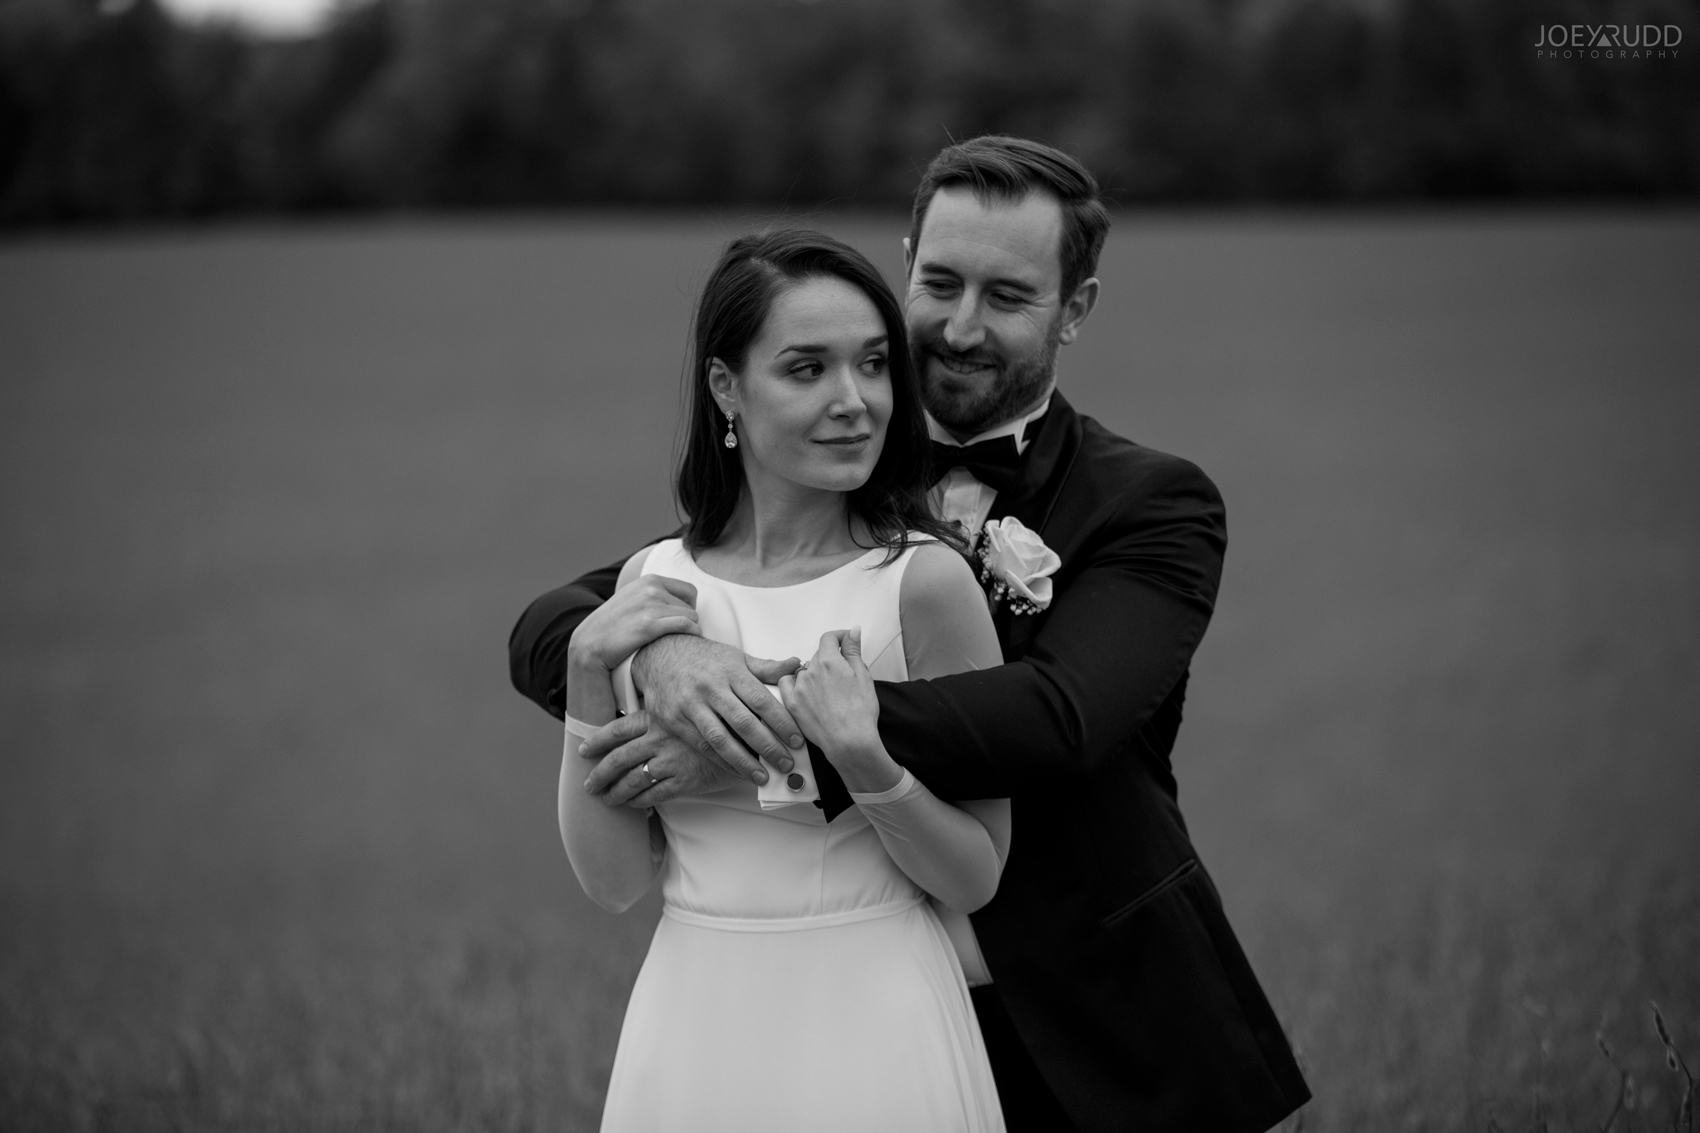 2018_10_07---Aksana-&-Mark-714TopRight.jpgEvermore Wedding, Evermore Wedding and Events, Ottawa Wedding, Almonte Wedding, Ottawa Photographer, Wedding Photography, Wedding Photographer, Joey Rudd Photography, Farm Wedding, Rustic Wedding, Barn Wedding Venue, Wedding Venue, Ottawa Wedding Venue, Almonte Riverside Inn, Candid, field wedding photo, cute pose